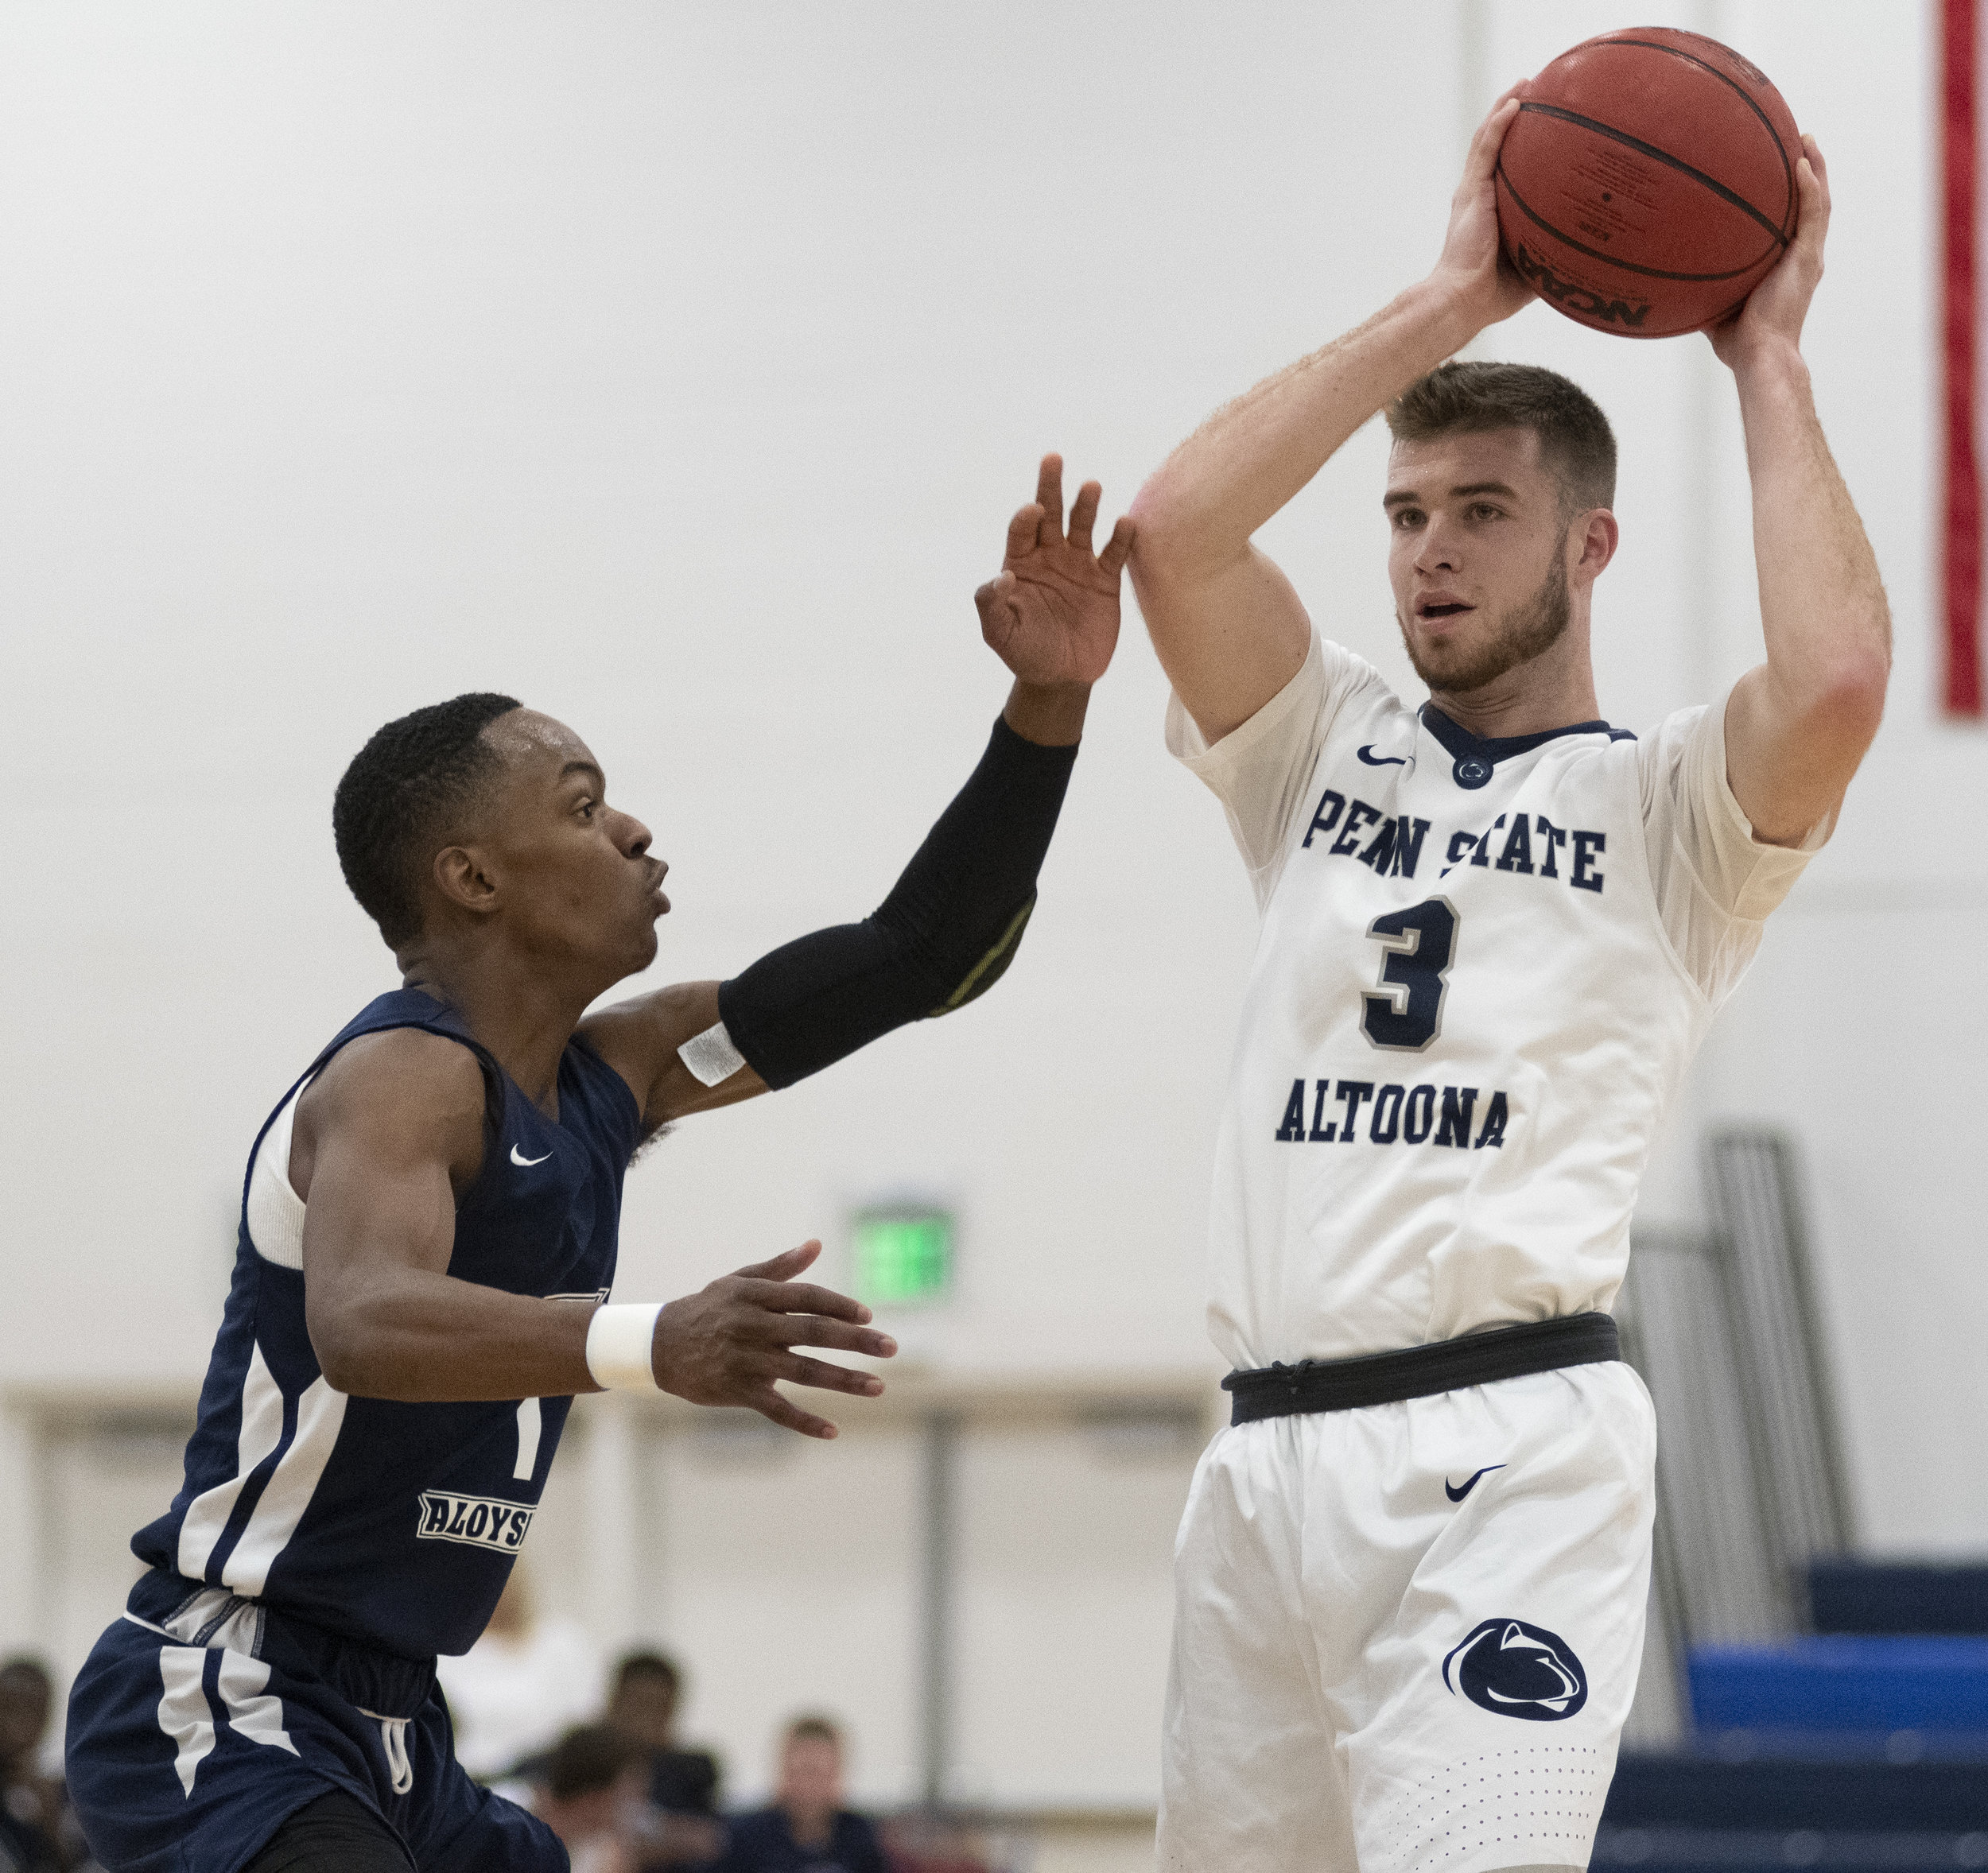 Austin Krise (3) looks for a pass during their game against Mount Aloysius College at Adler Arena on Wednesday, Nov. 28, 2018. | Photo by: Noah Riffe